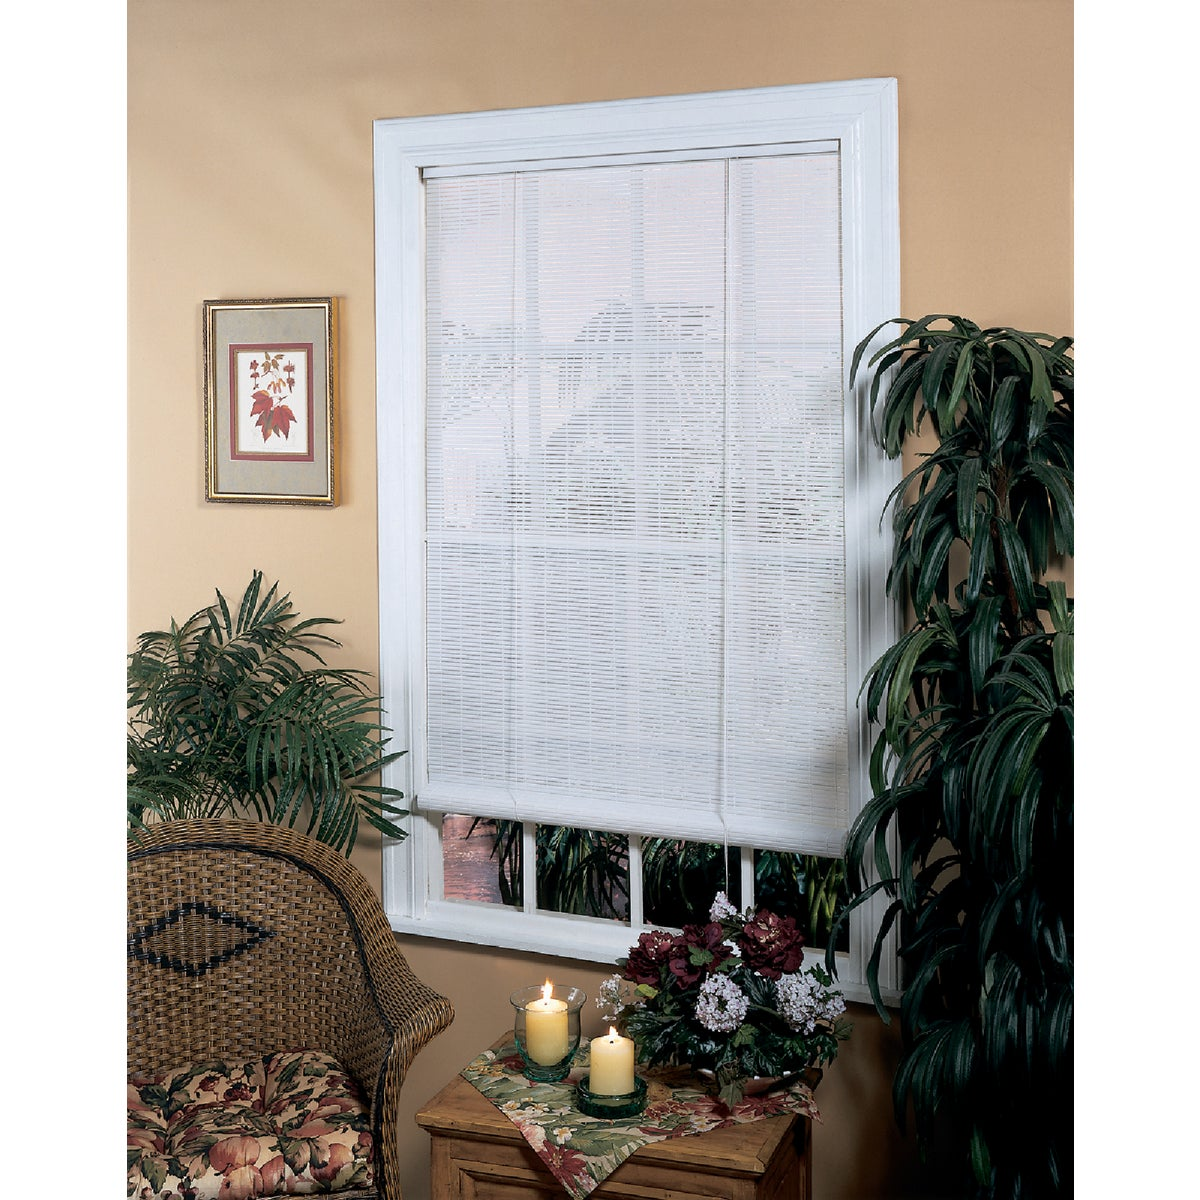 36X72 WHT ROLL-UP BLIND